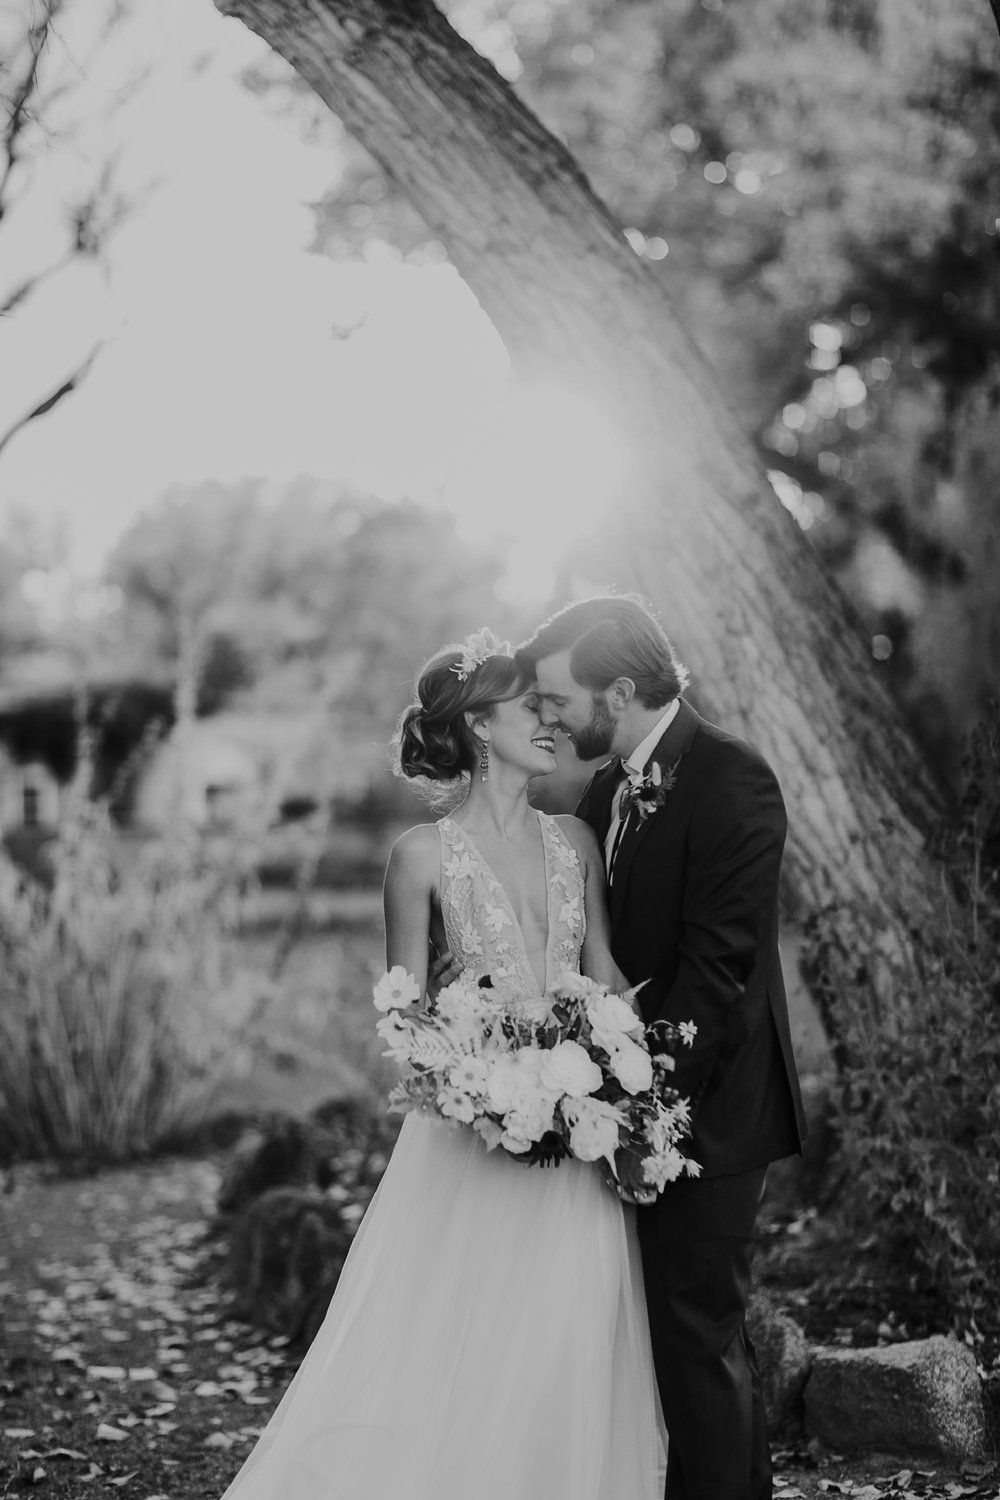 Alicia+lucia+photography+-+albuquerque+wedding+photographer+-+santa+fe+wedding+photography+-+new+mexico+wedding+photographer+-+new+mexico+wedding+-+albuquerque+wedding+-+rocky+mountain+bride+-+los+poblanos+wedding_0089.jpg